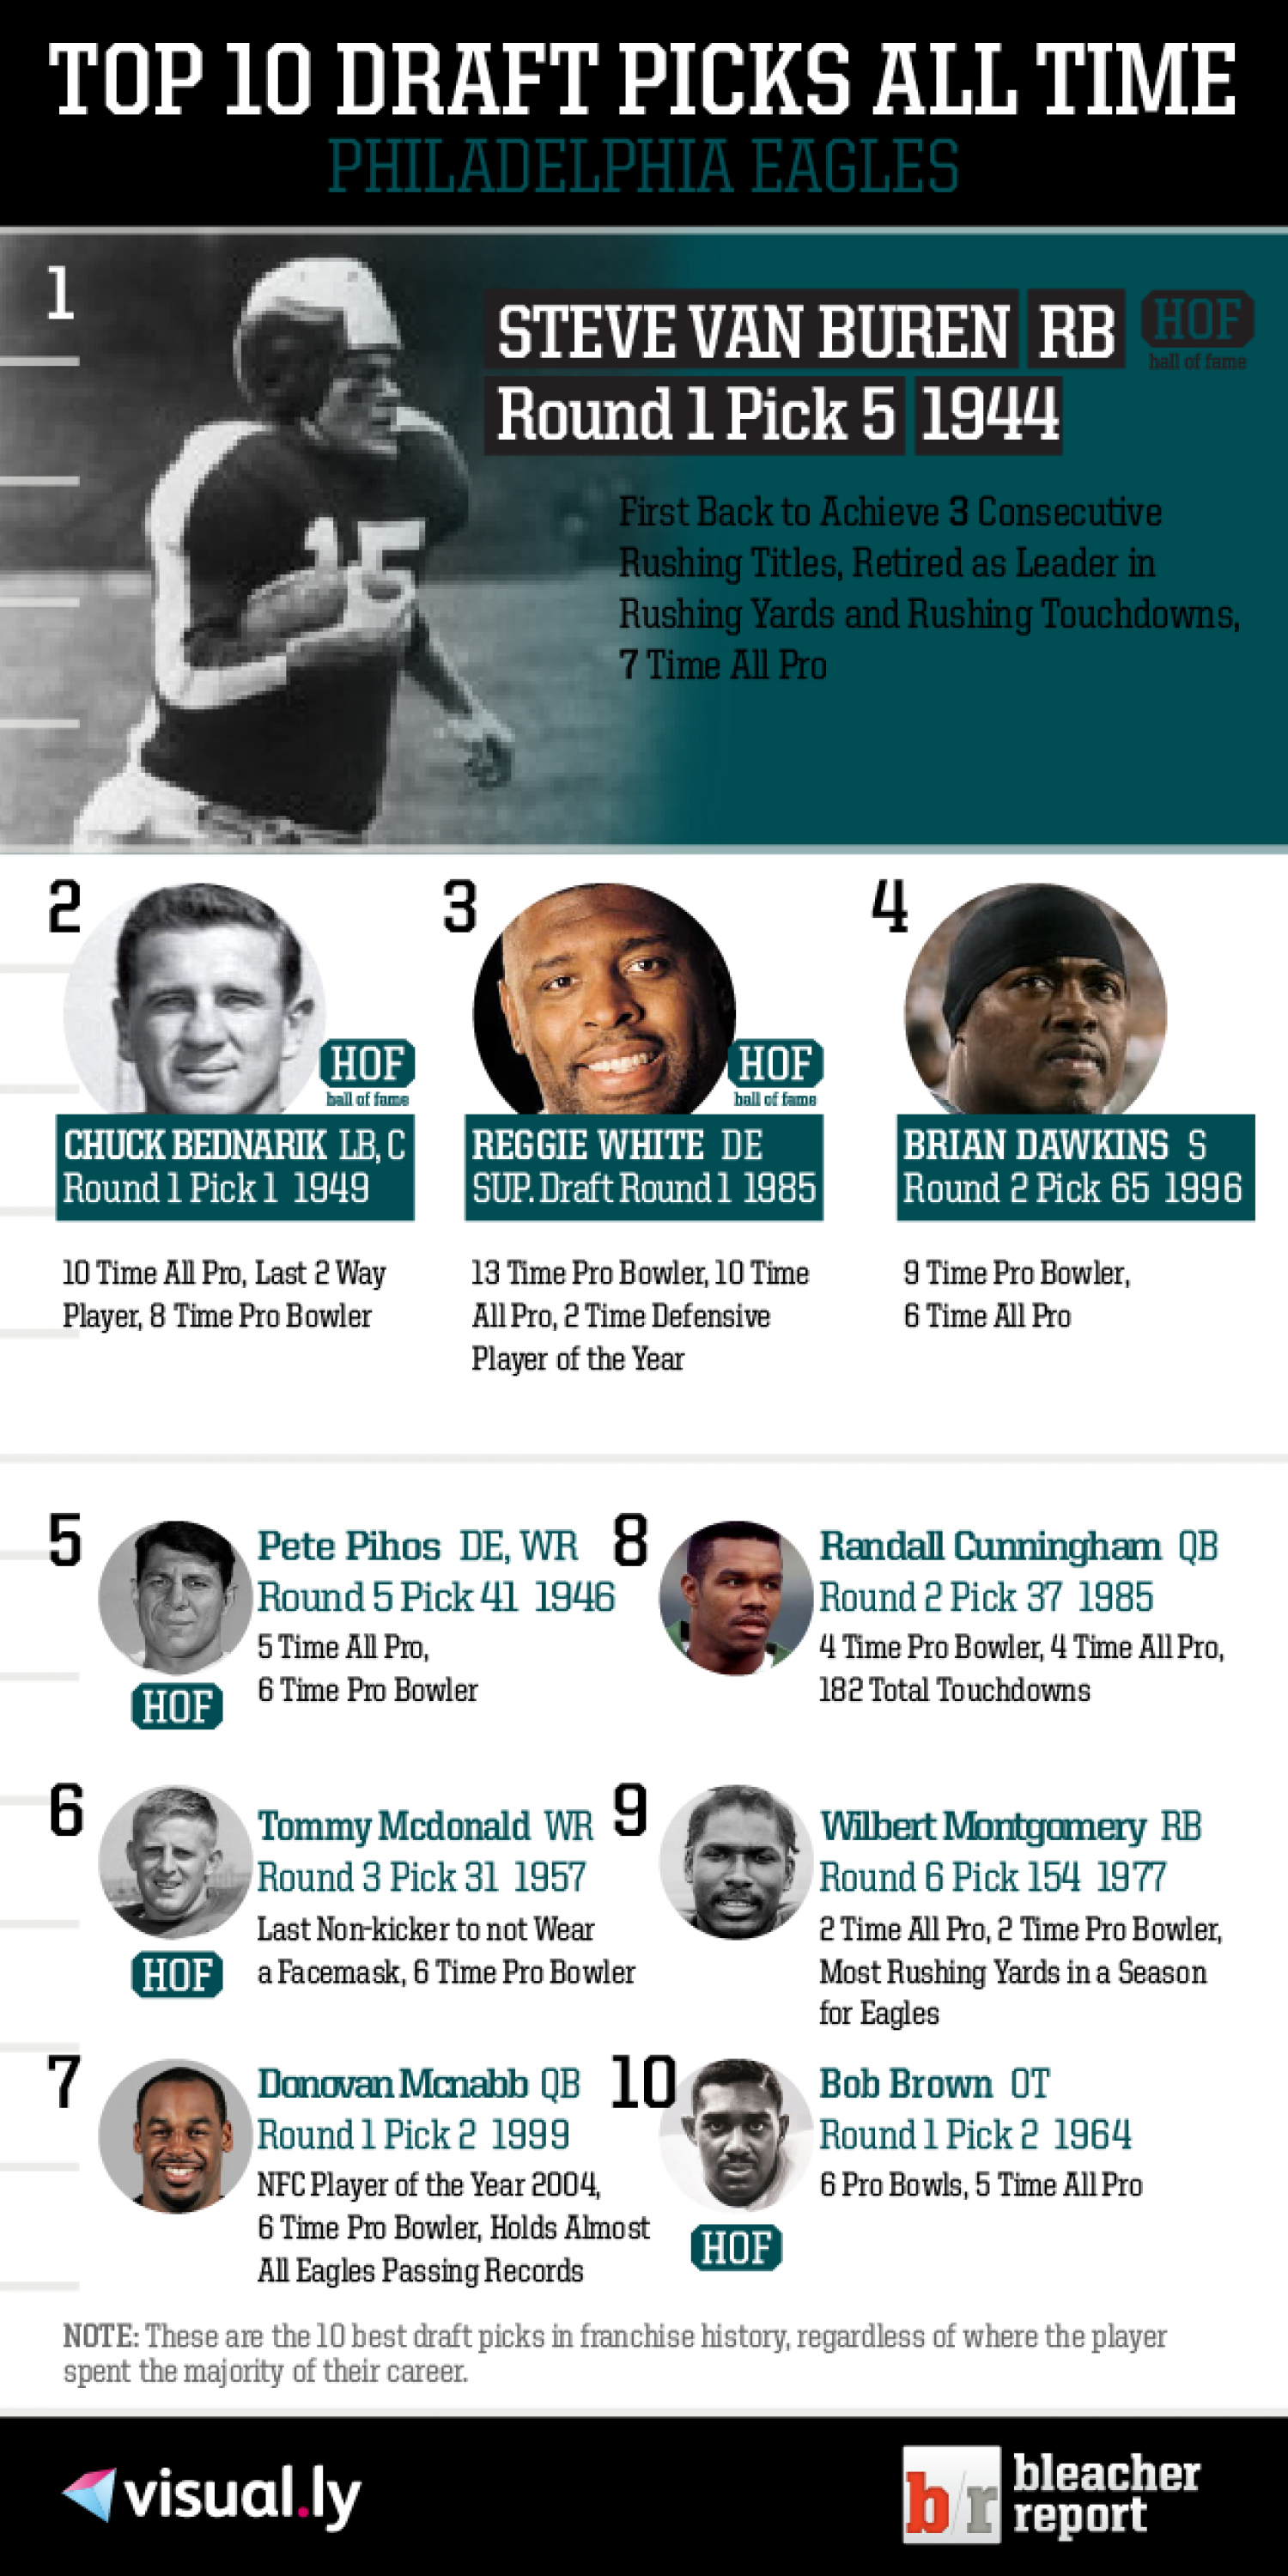 Top 10 Draft Picks of All Time: Philadelphia Eagles Infographic